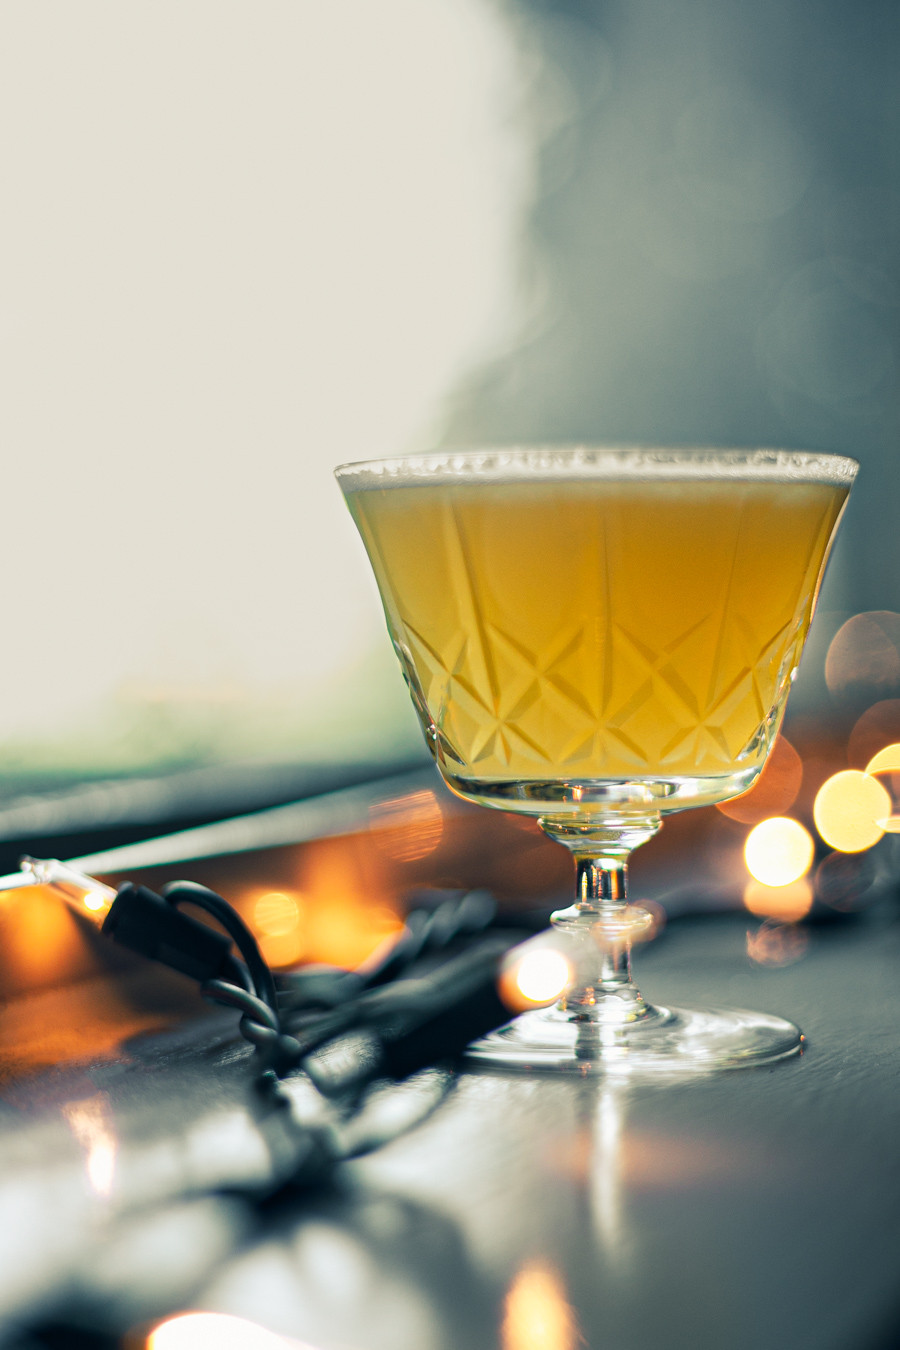 A cocktail by Evelyn Chick, inspired by a London Calling